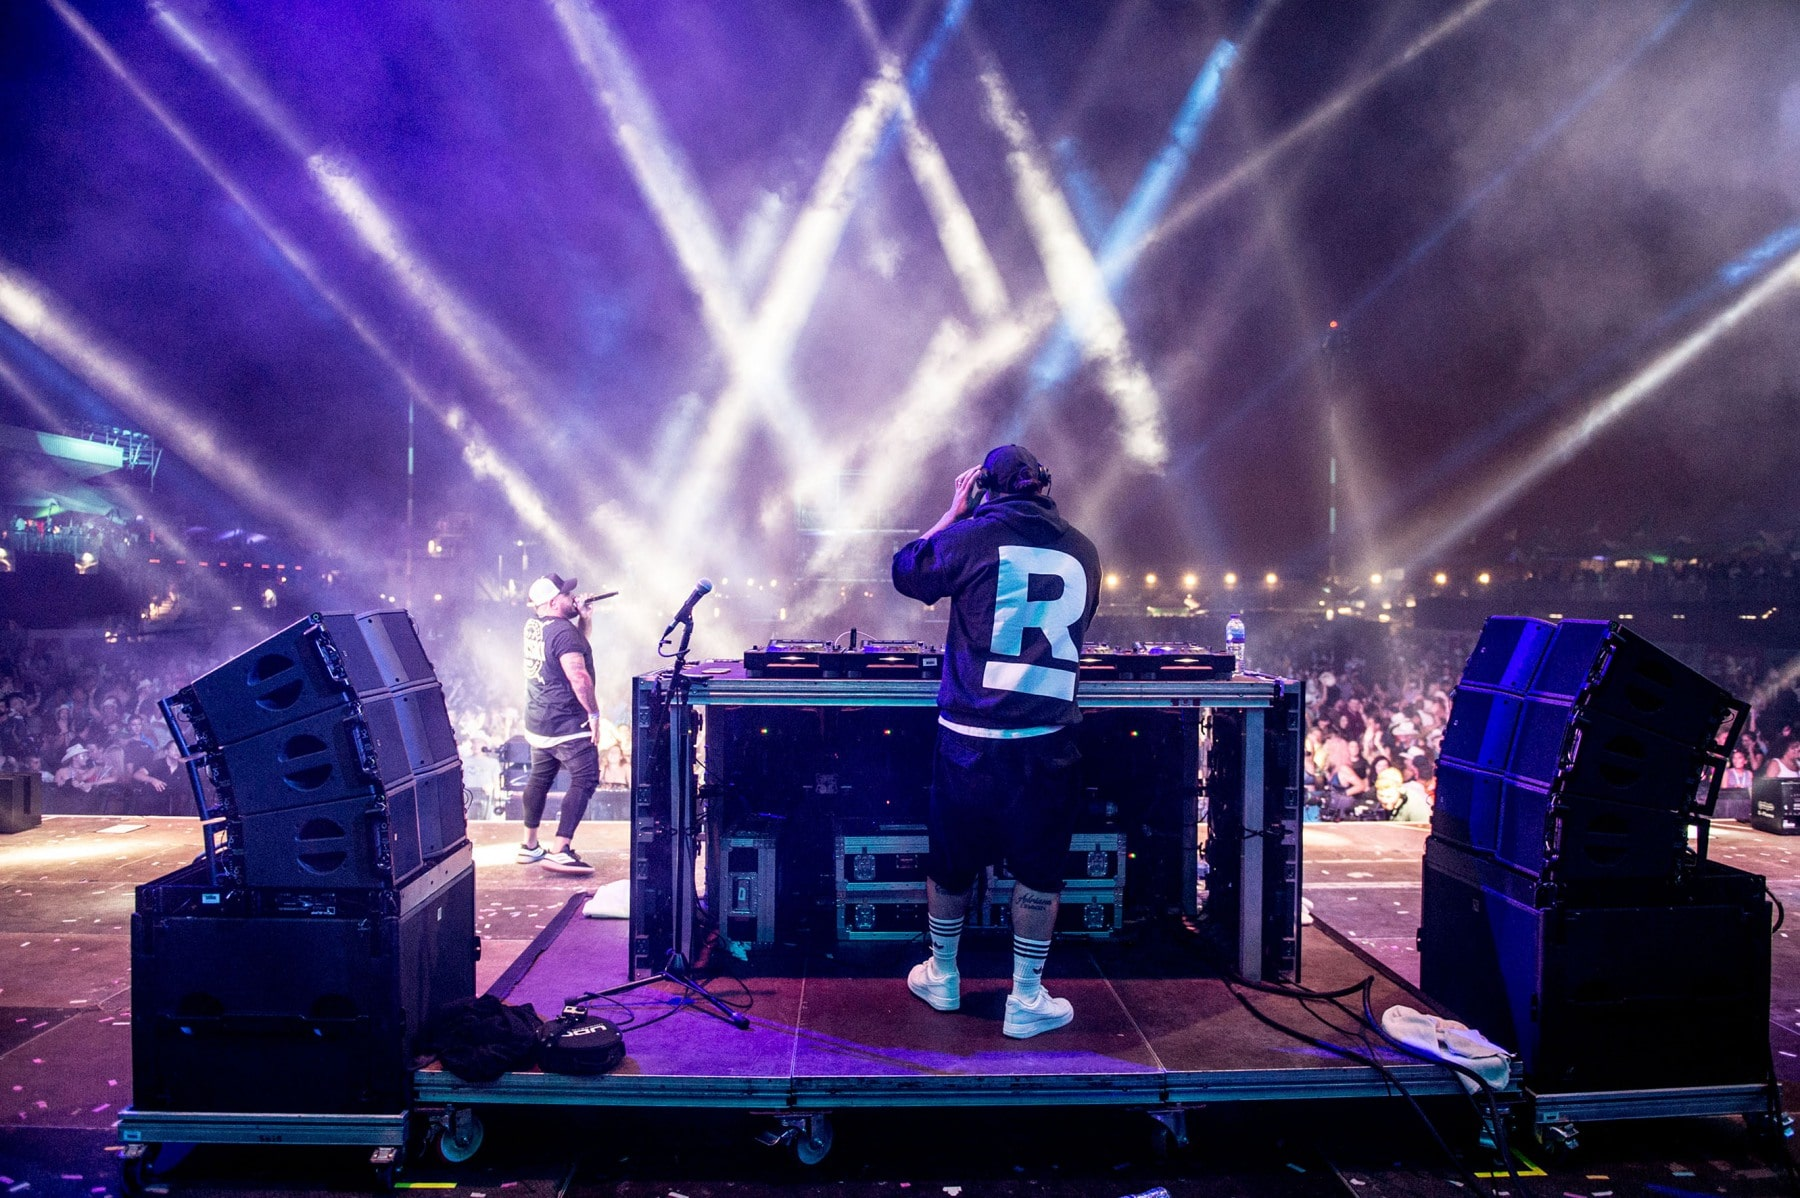 r3wire-varski-at-mtv-presents-gibraltar-calling-2018-day-2-by-ollie-millington-13_31011423688_o